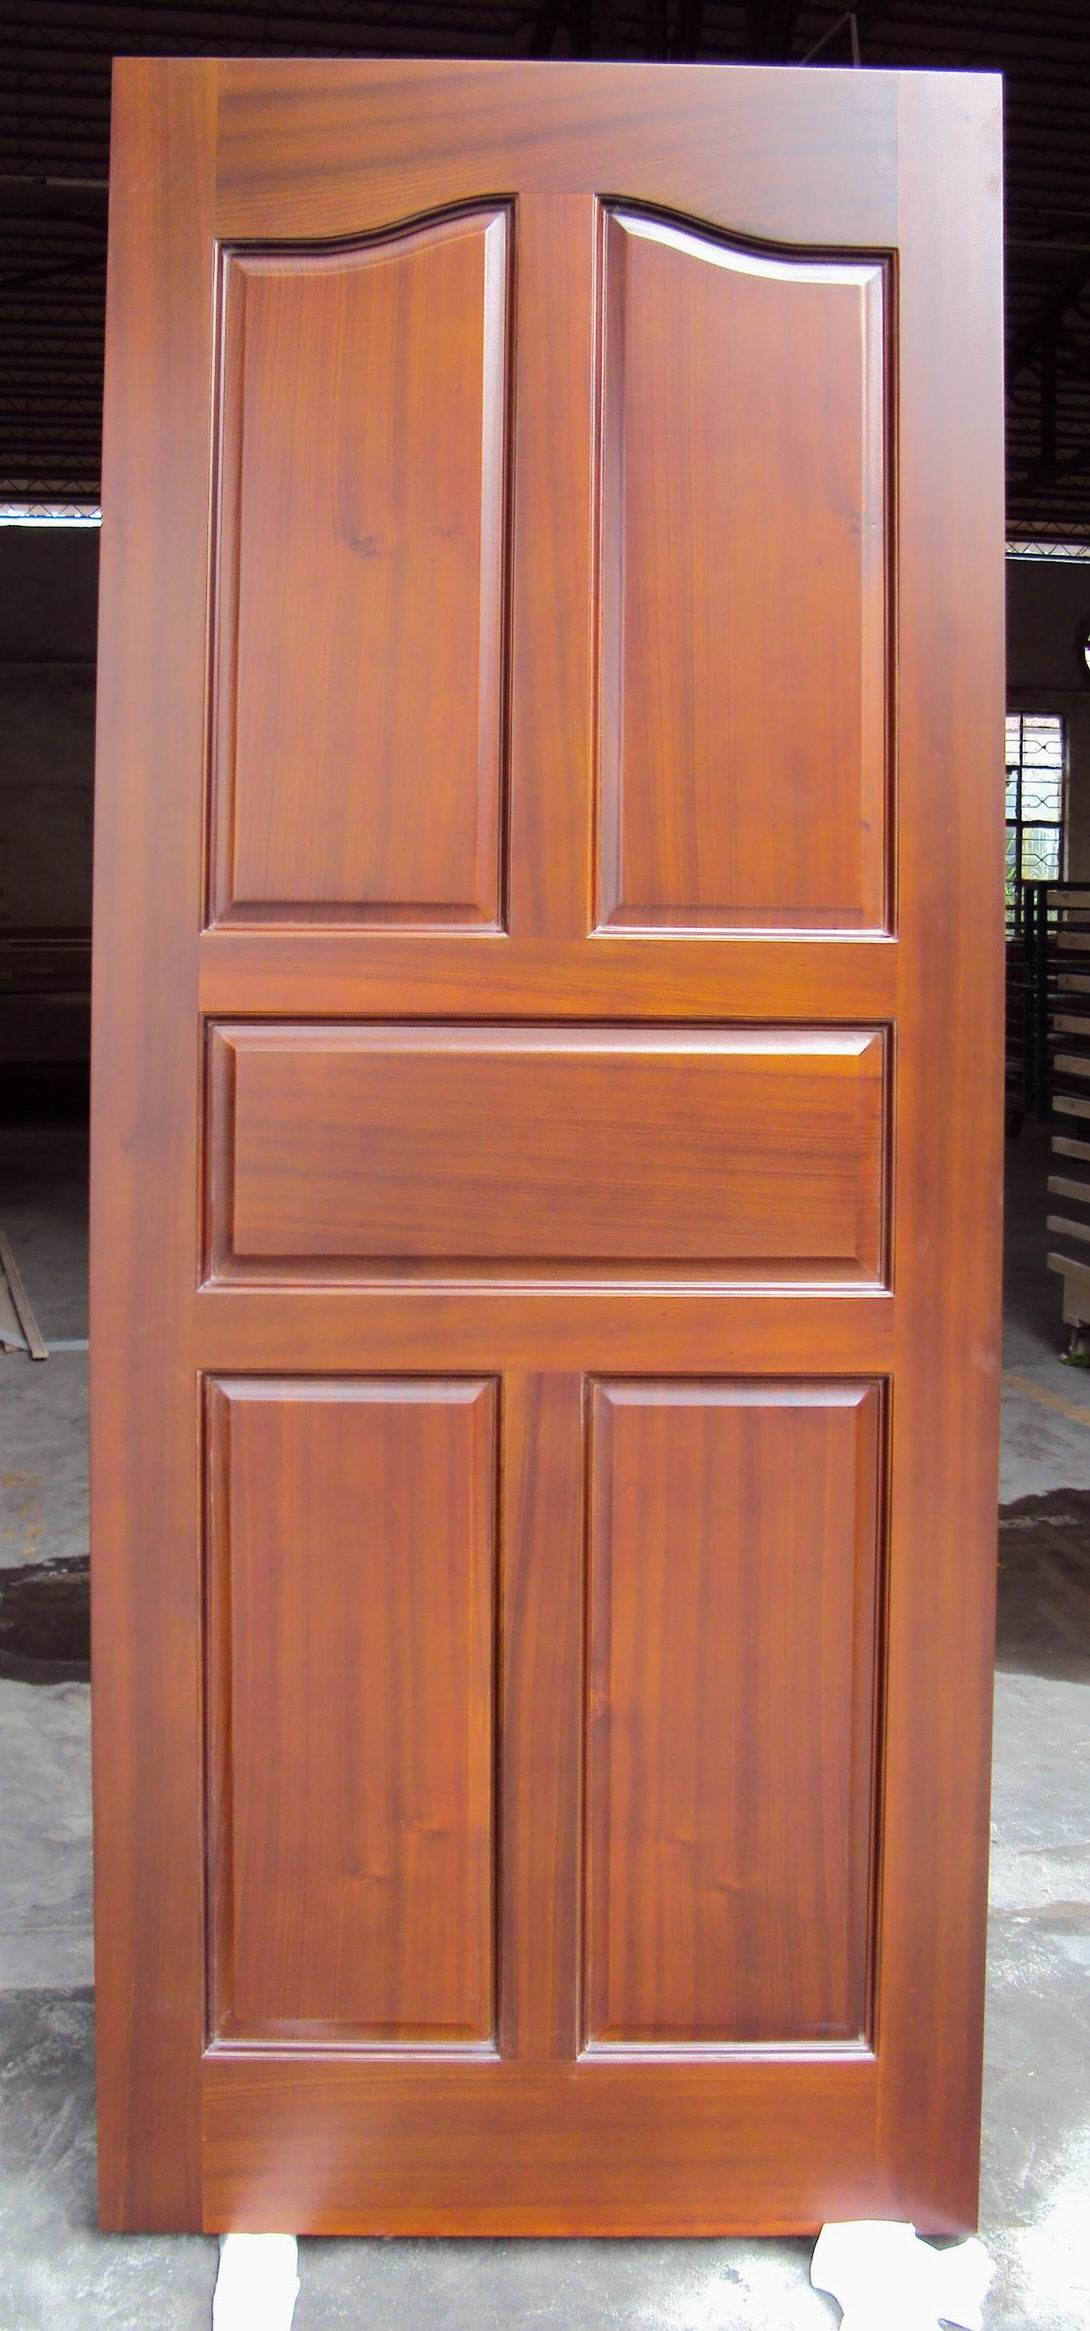 Teak wood doors crowdbuild for for Wooden entrance doors